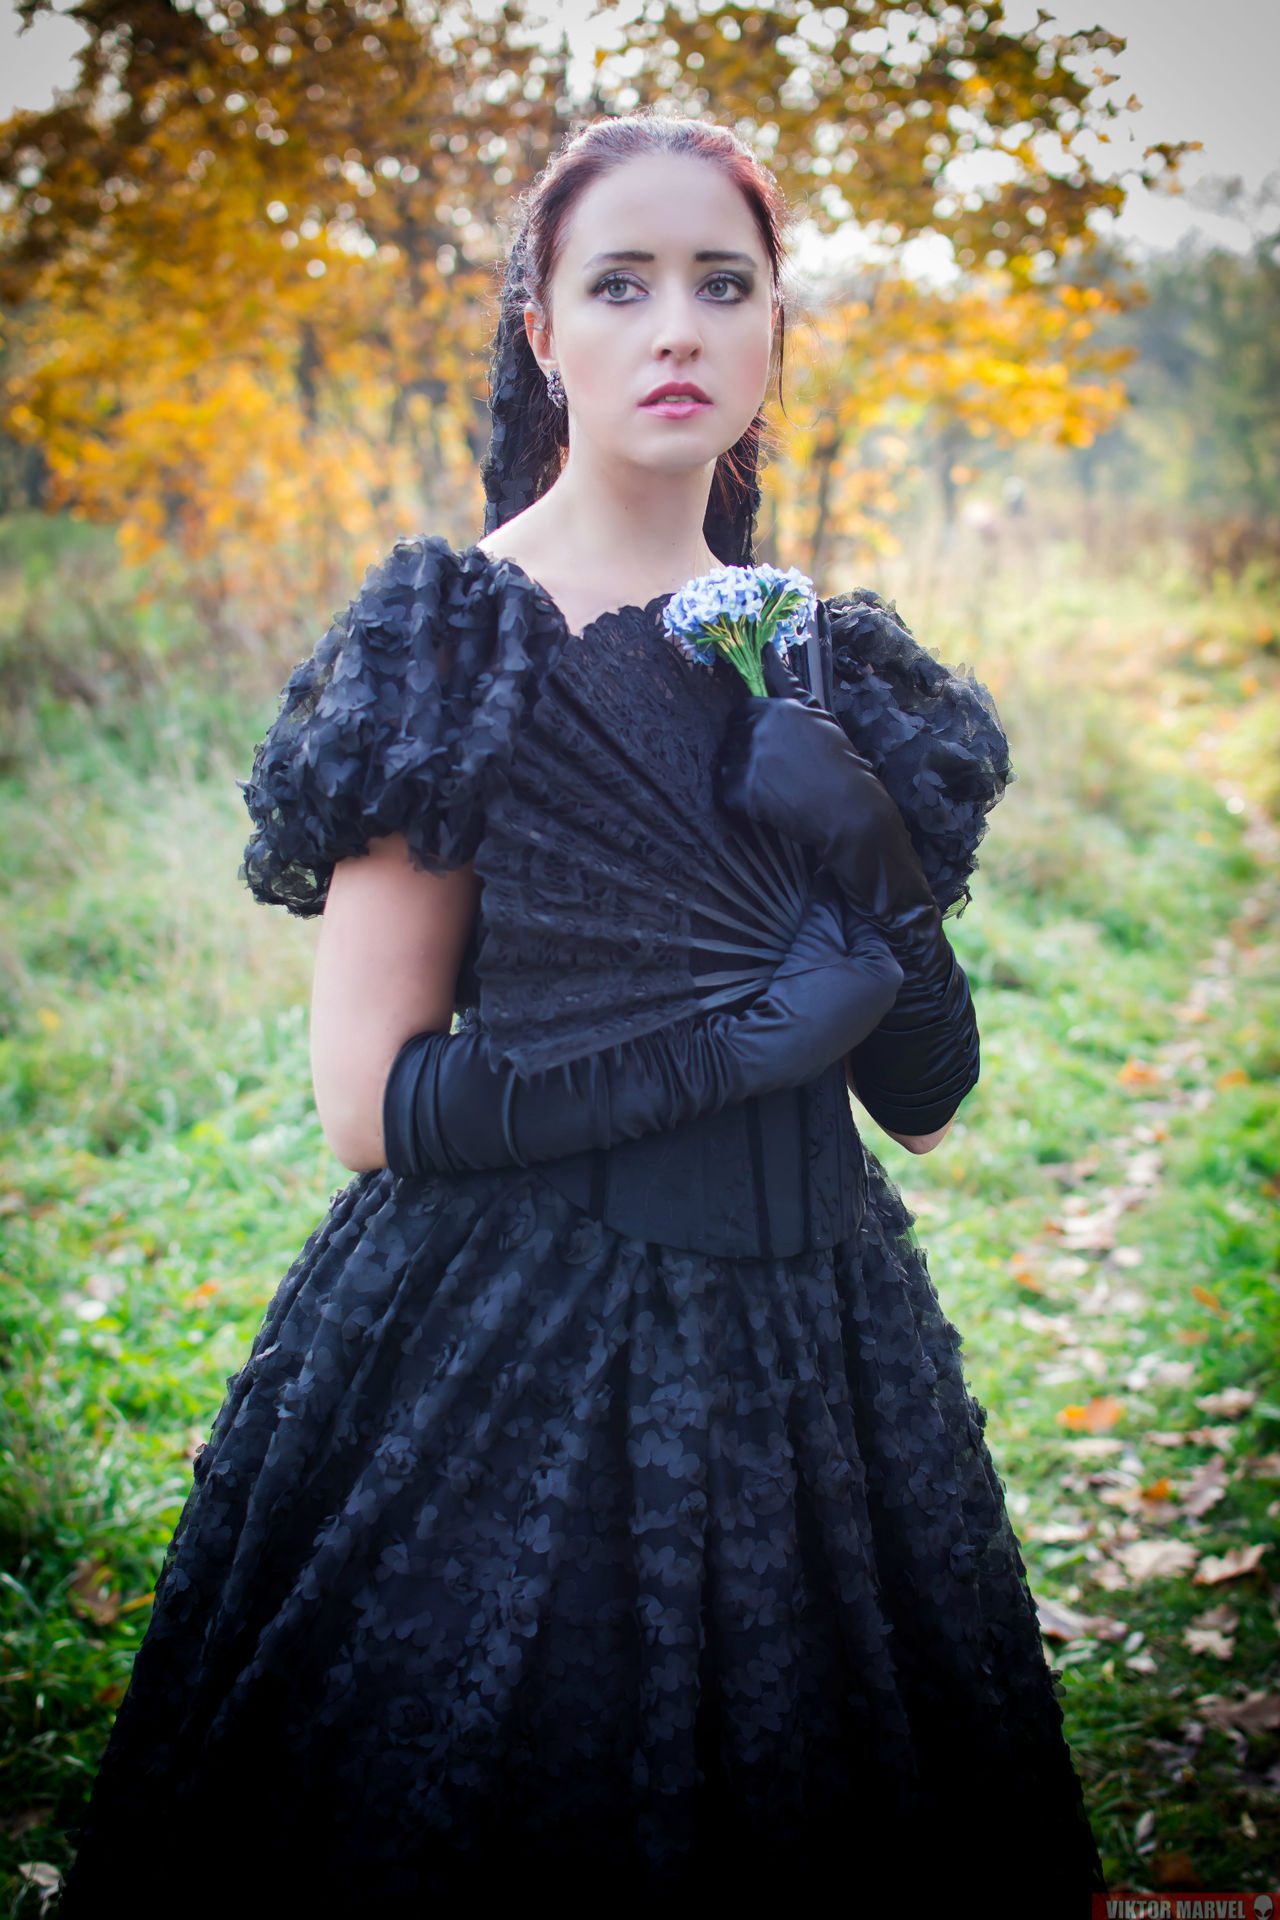 Beauty Beautiful People Dress Autumn Fashion Nature Outdoors Portrait Glamour Standing One Person People Beauty In Nature Young Adult Day Adult Adults Only Period Costume Gotika Photography Gerl Beautiful Woman